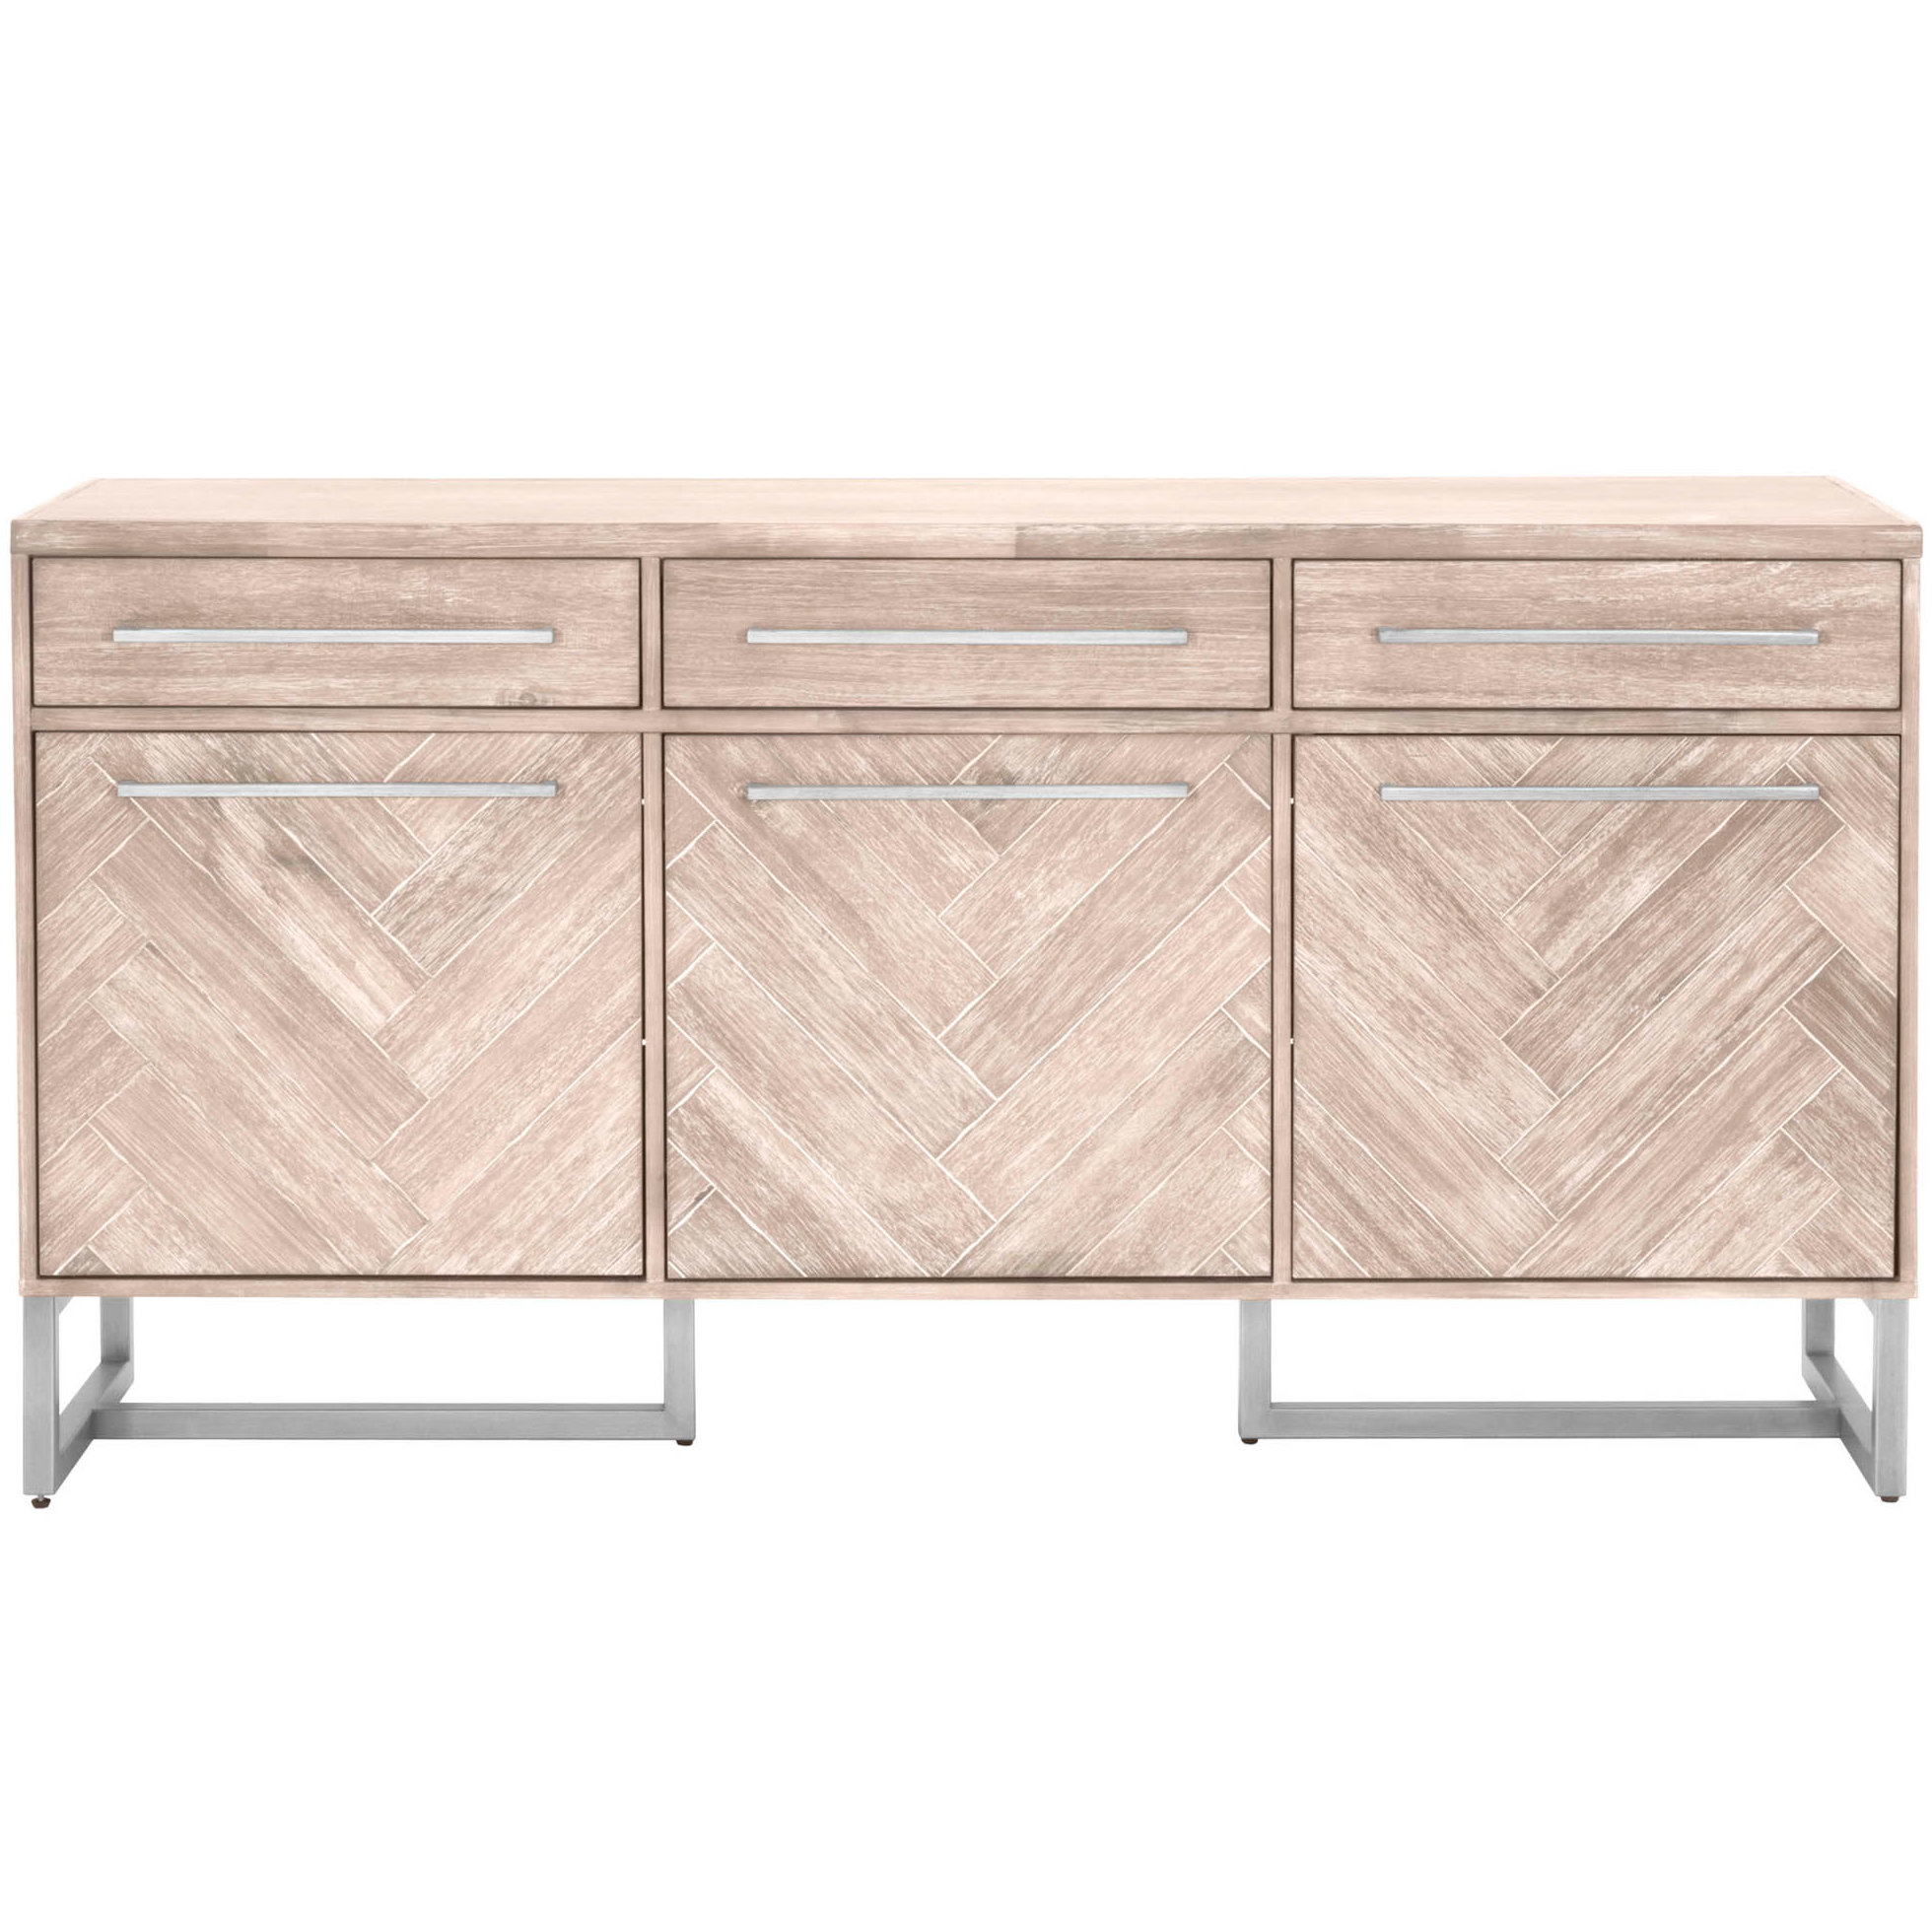 Tre Sideboard Pertaining To 2018 Dillen Sideboards (#19 of 20)